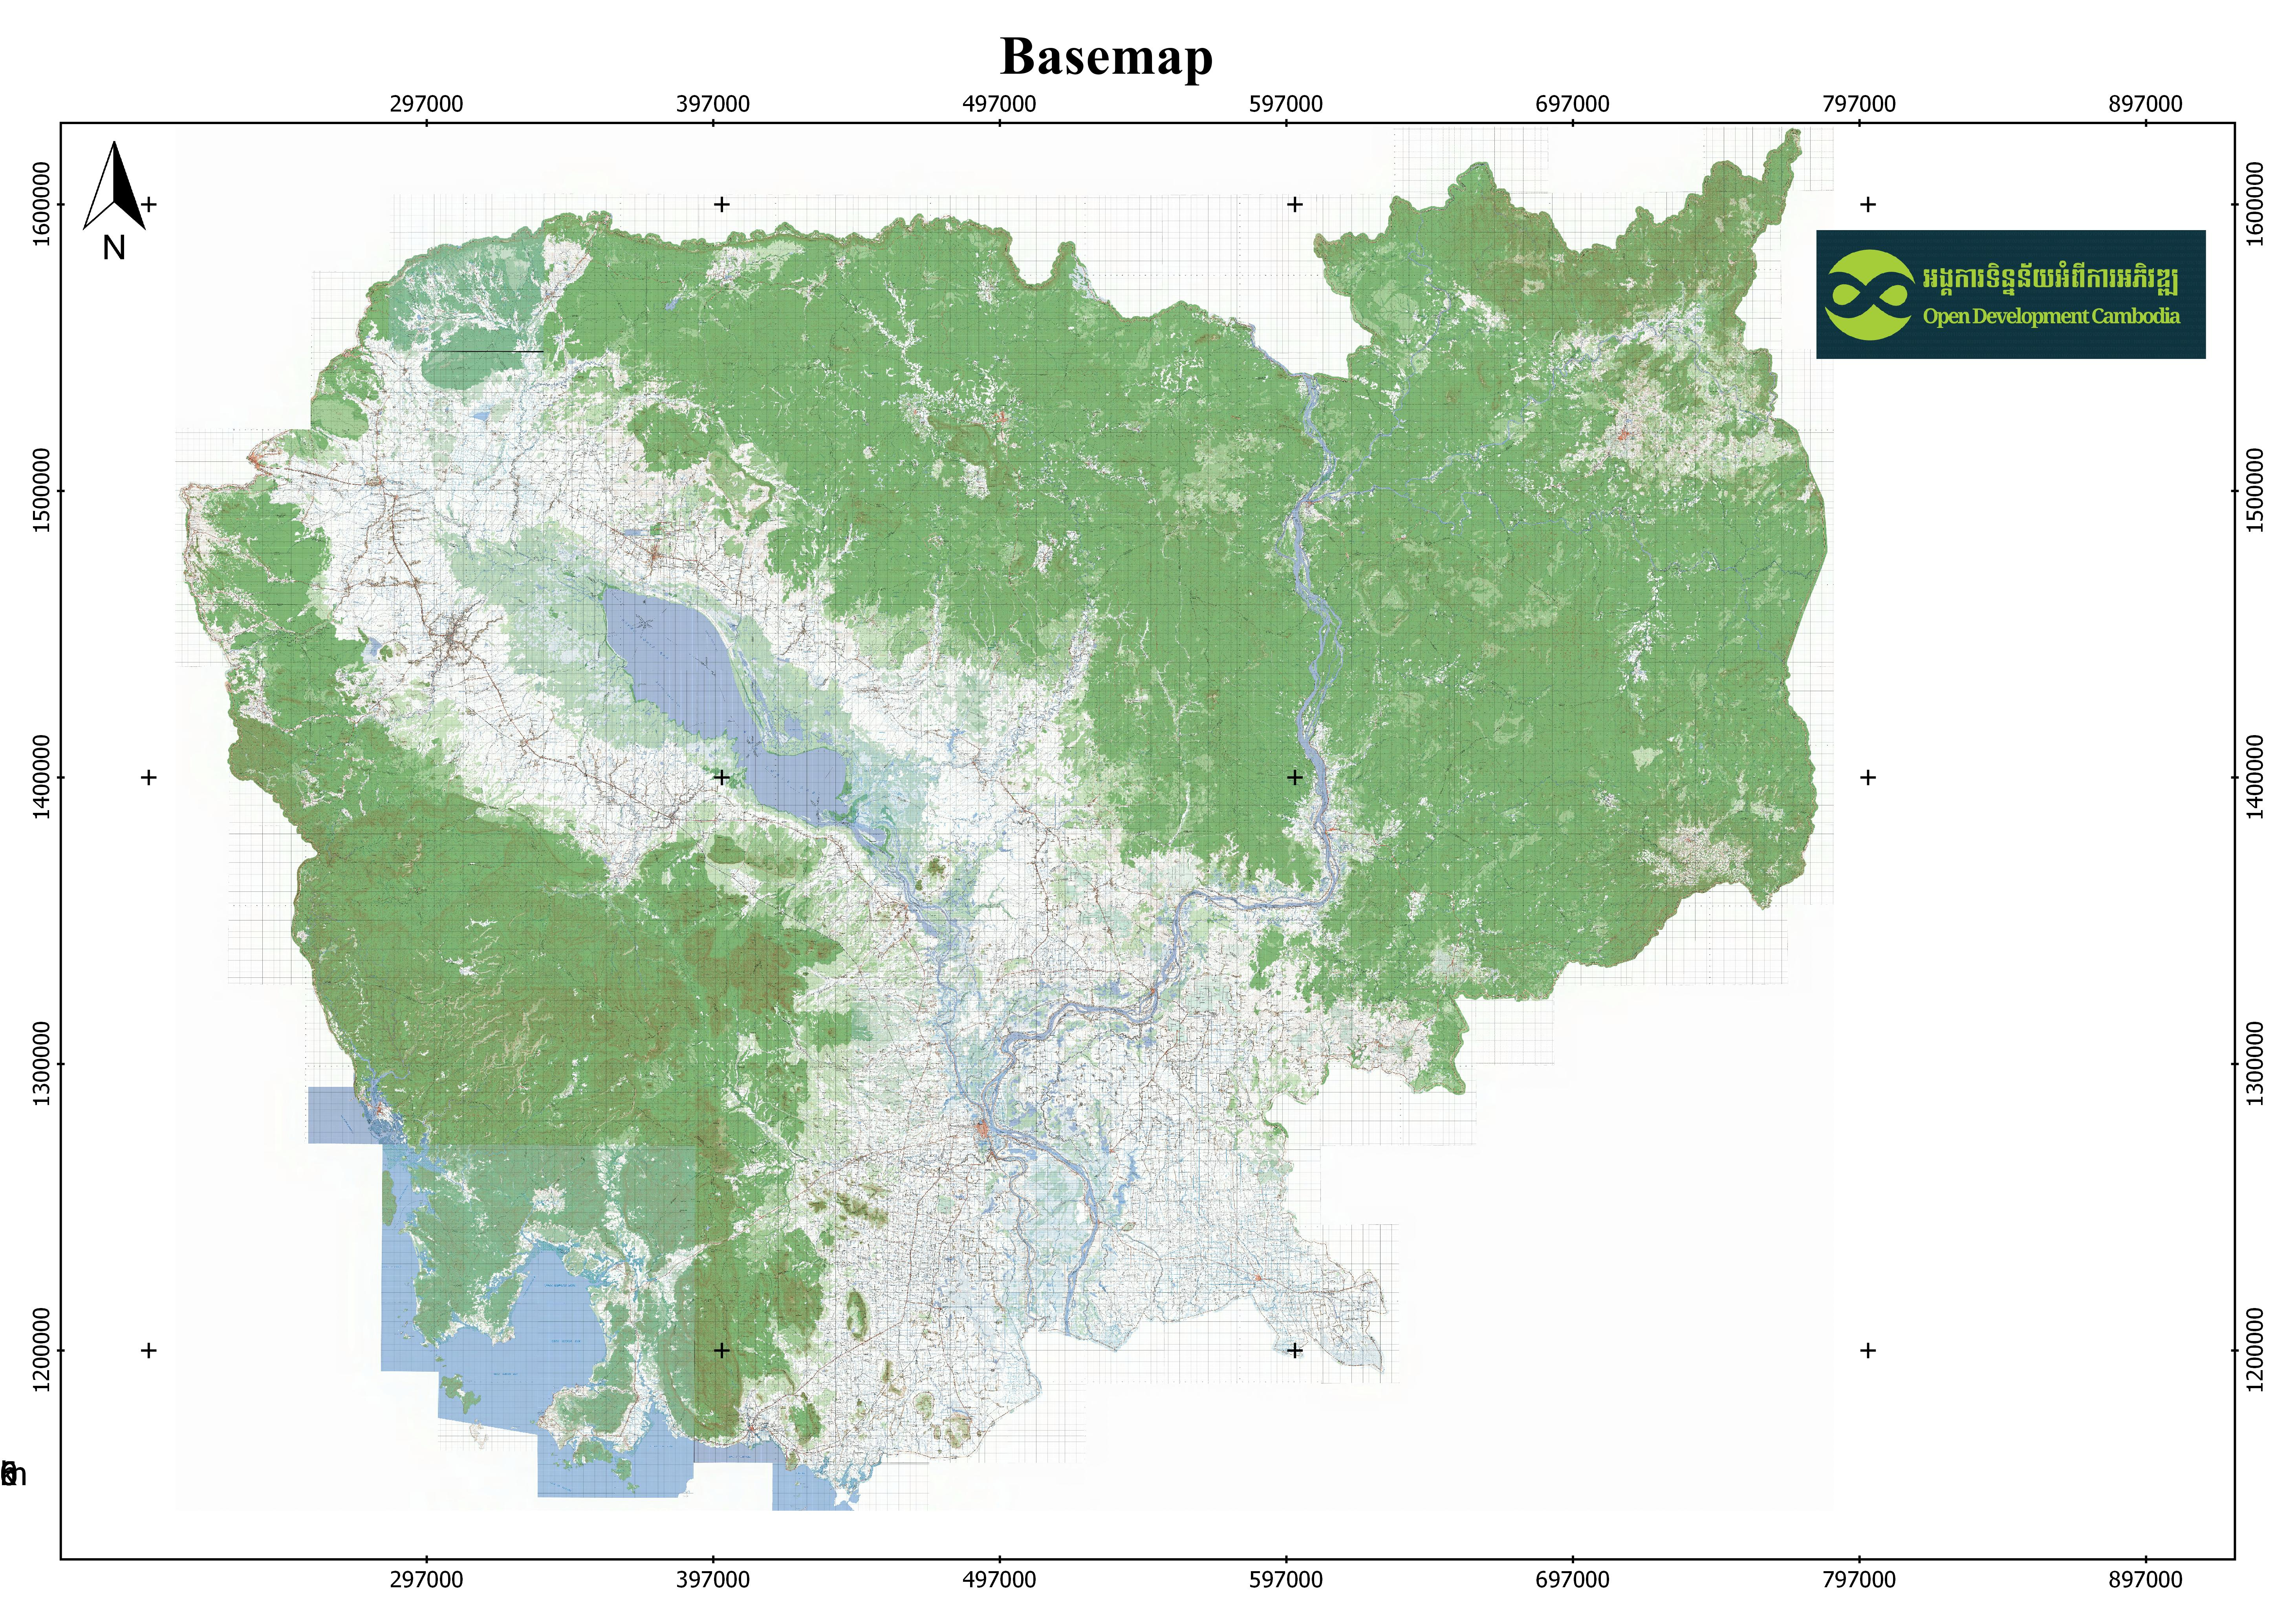 Basemap open development cambodia odc map catalogue gumiabroncs Gallery